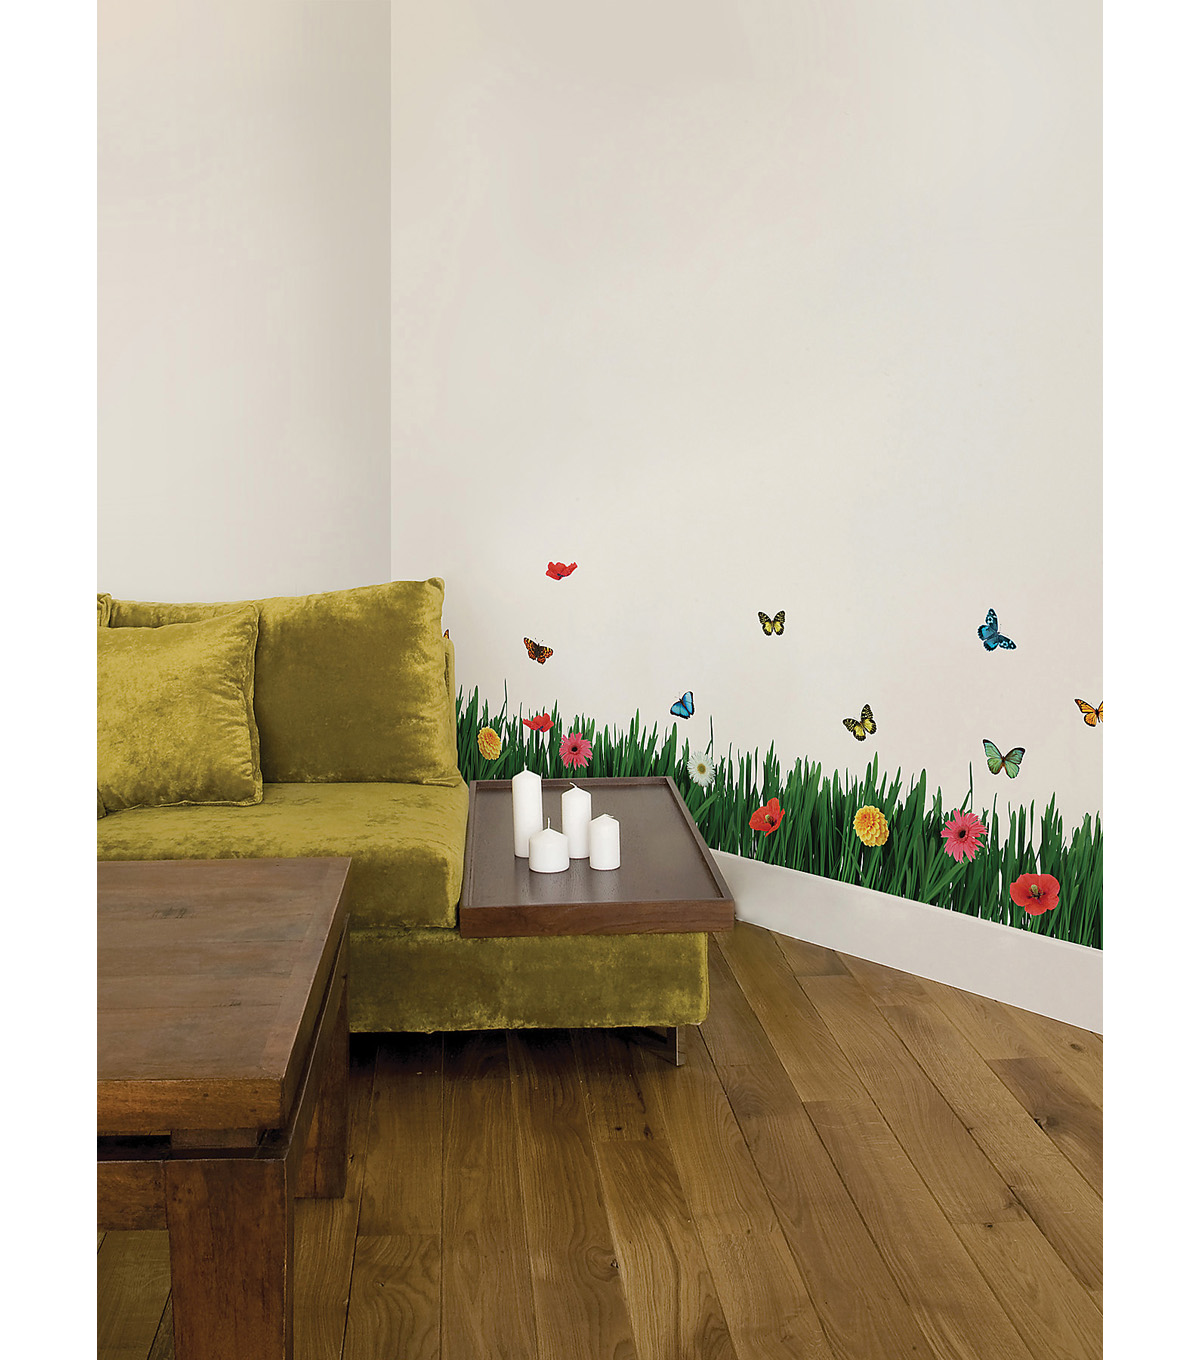 Home Decor Grass Wall Stickers, 23 Piece Set